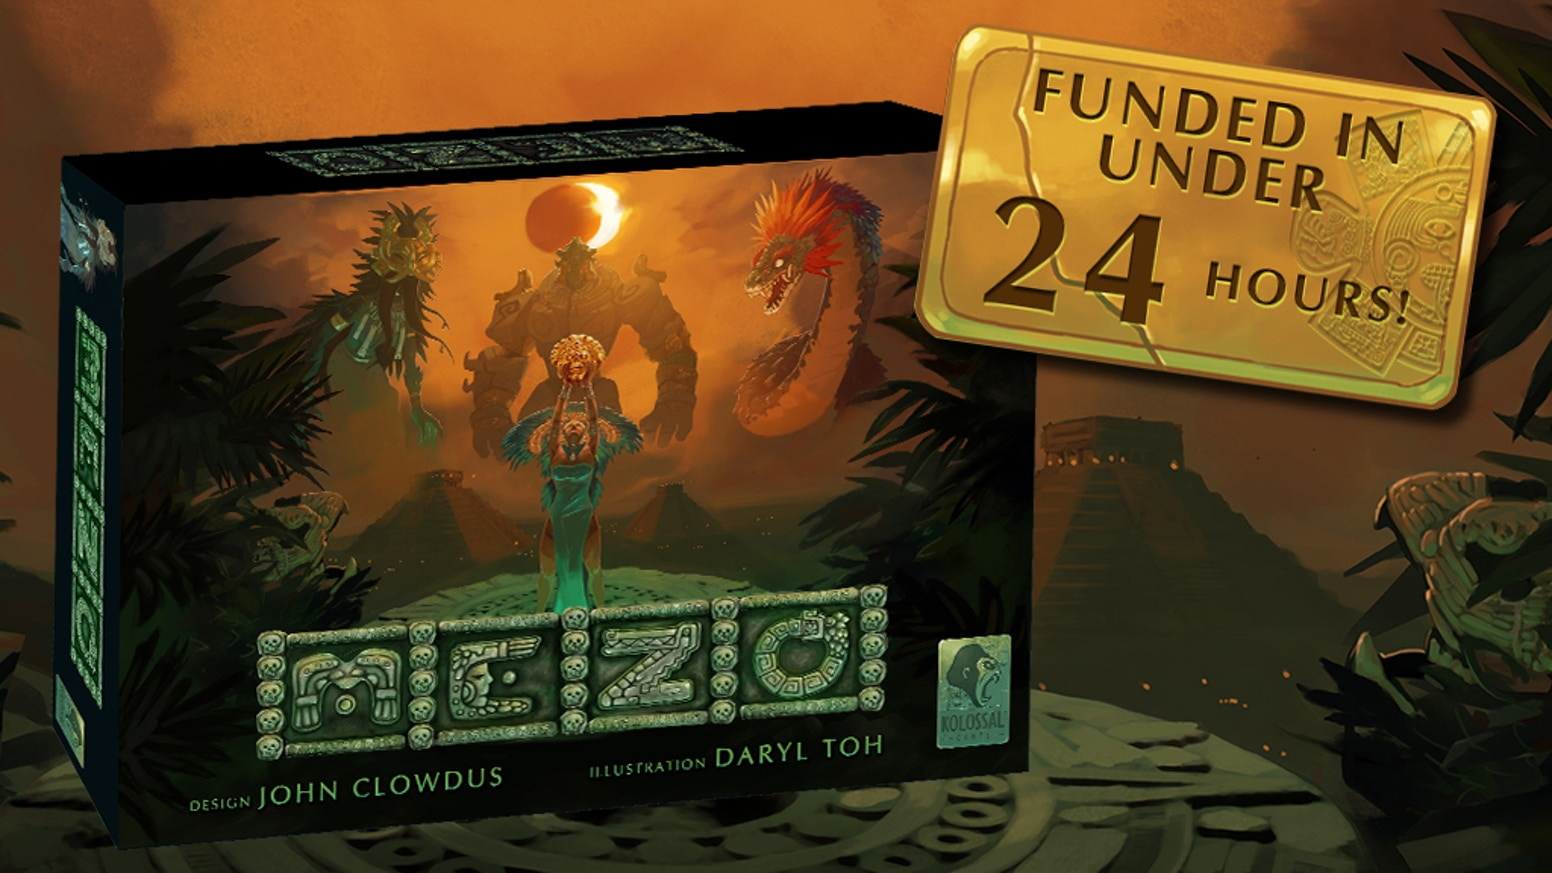 An innovative game of area control, conflict, and Mayan mythology designed by John Clowdus.